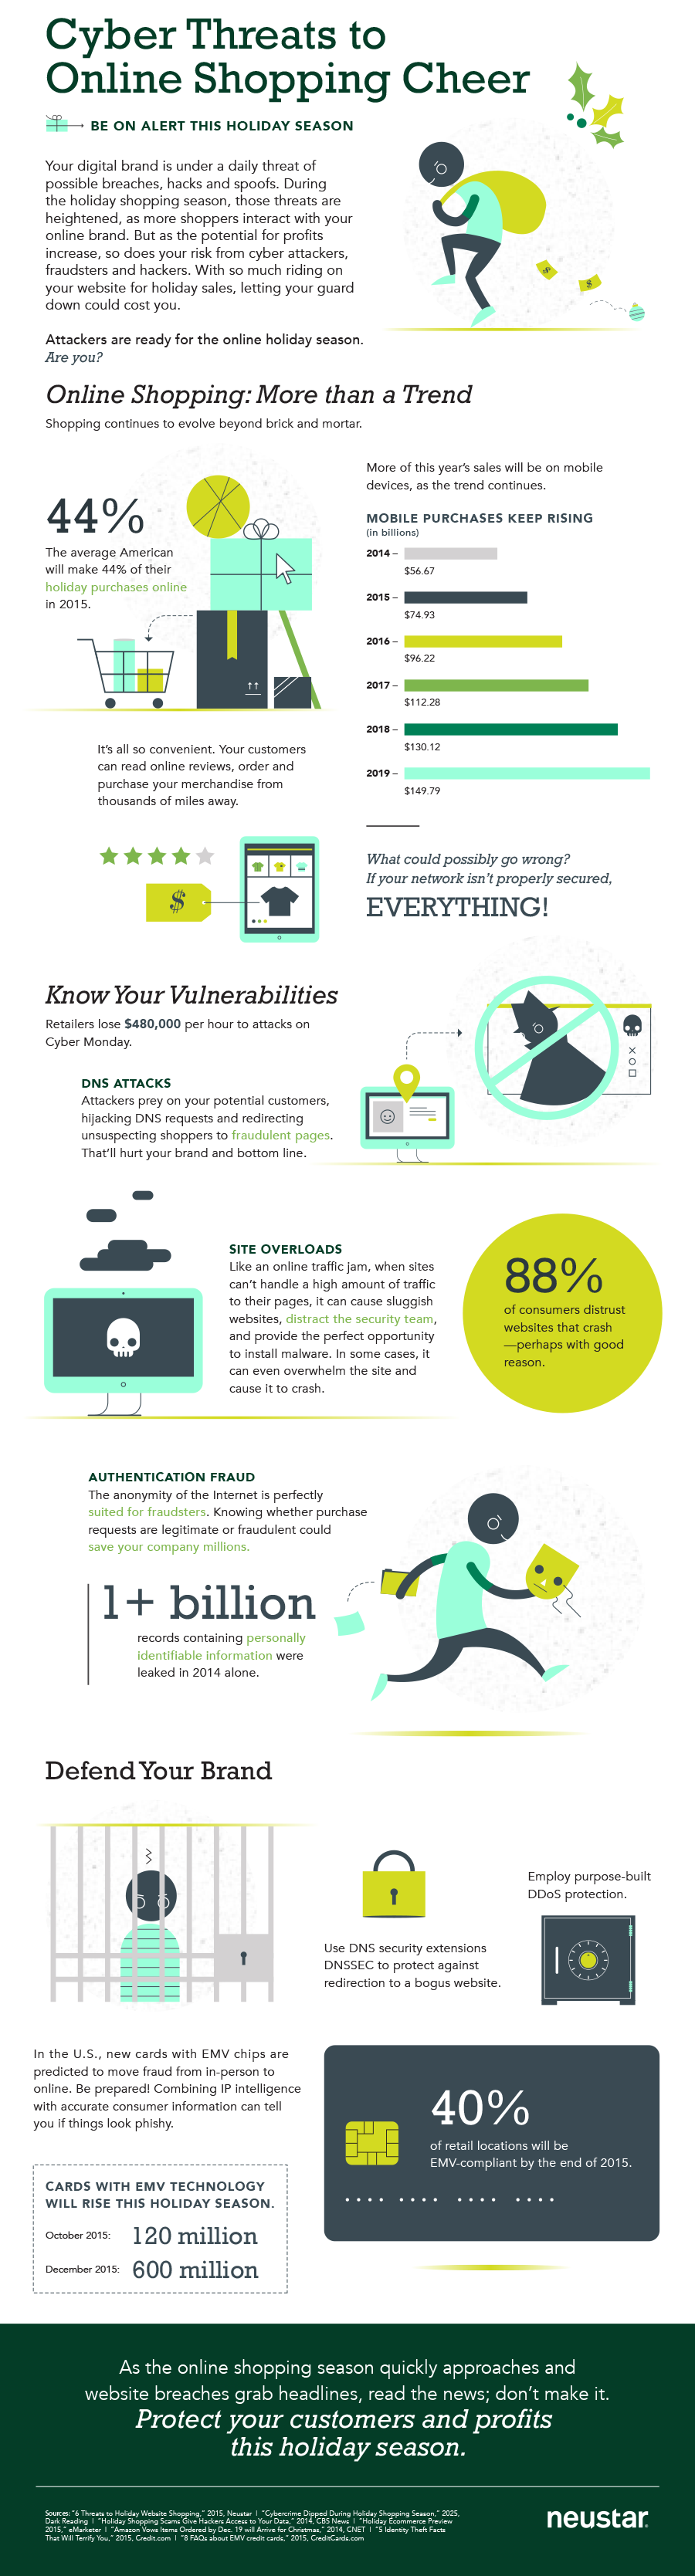 Cyber Threats to Holiday Online Shopping Infographic 2015